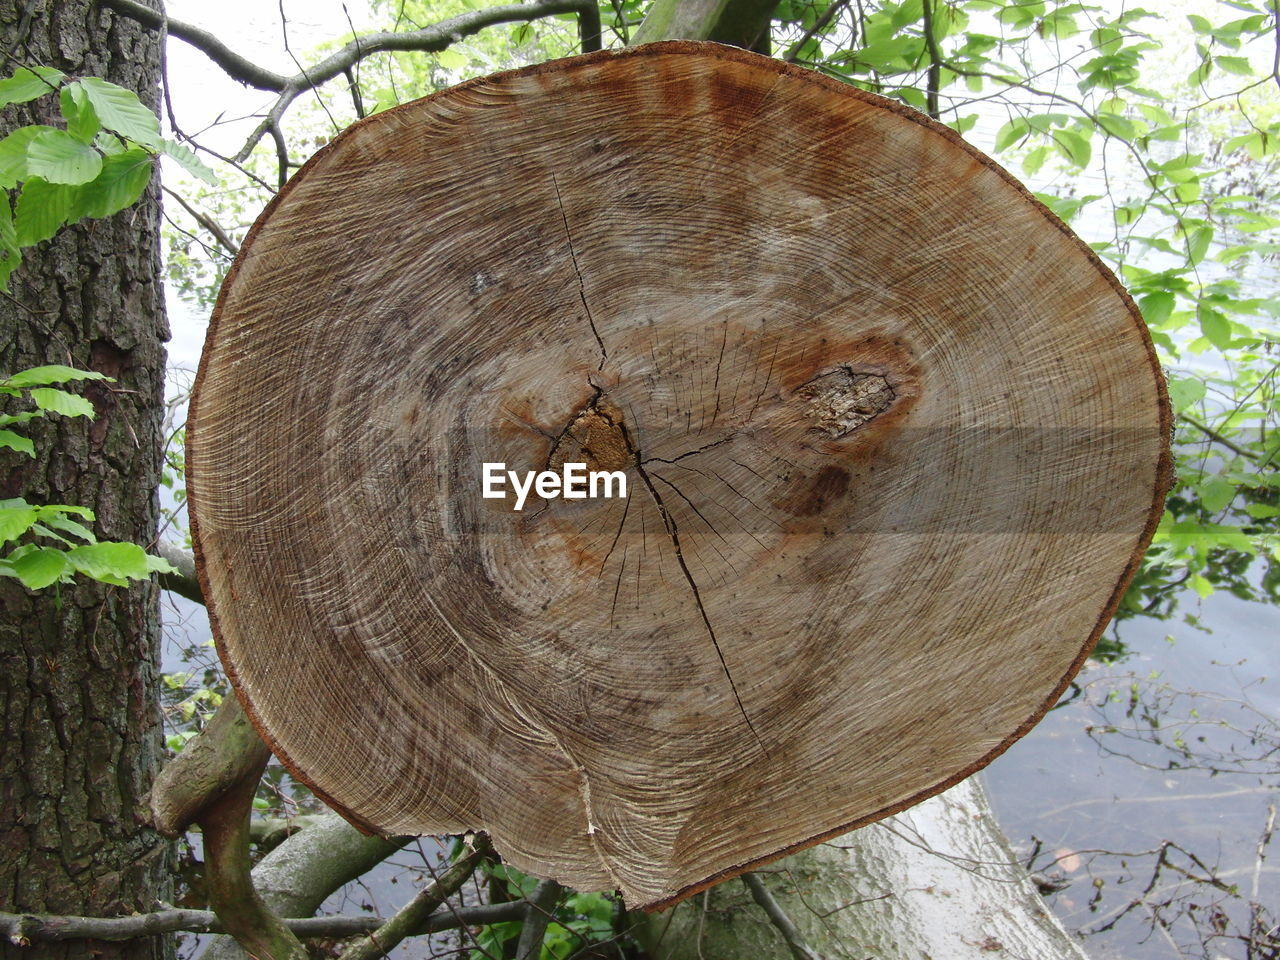 tree, wood - material, tree stump, tree ring, tree trunk, nature, circle, outdoors, day, deforestation, growth, plant, no people, log, lumber industry, close-up